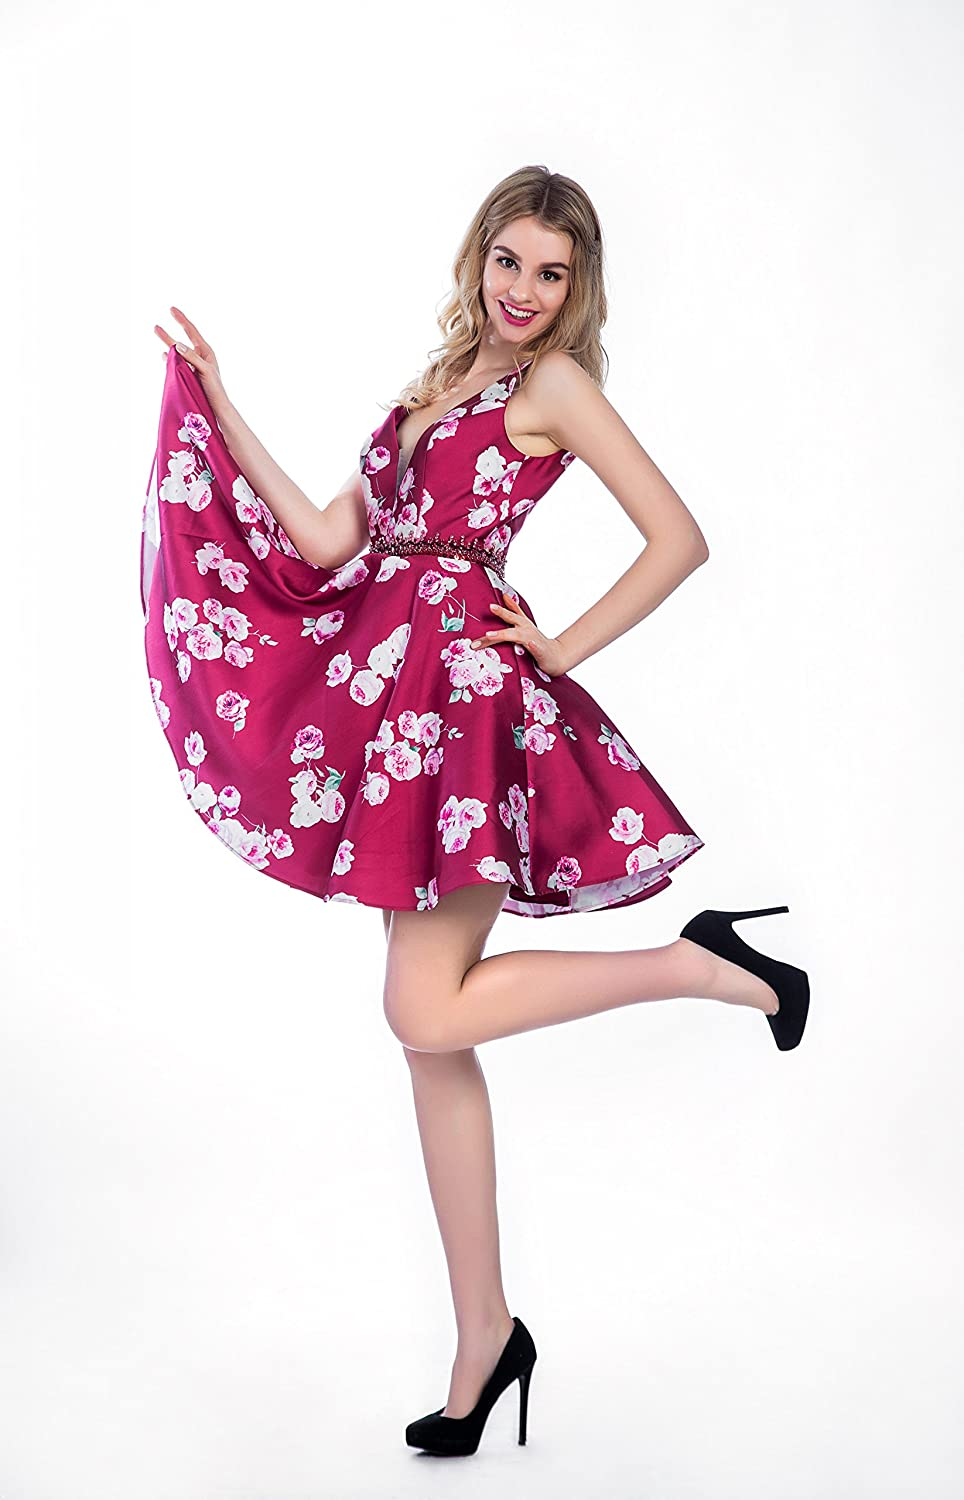 Sweetdress Printed Short Homecoming Dress Print Flower Party Cocktail Gown